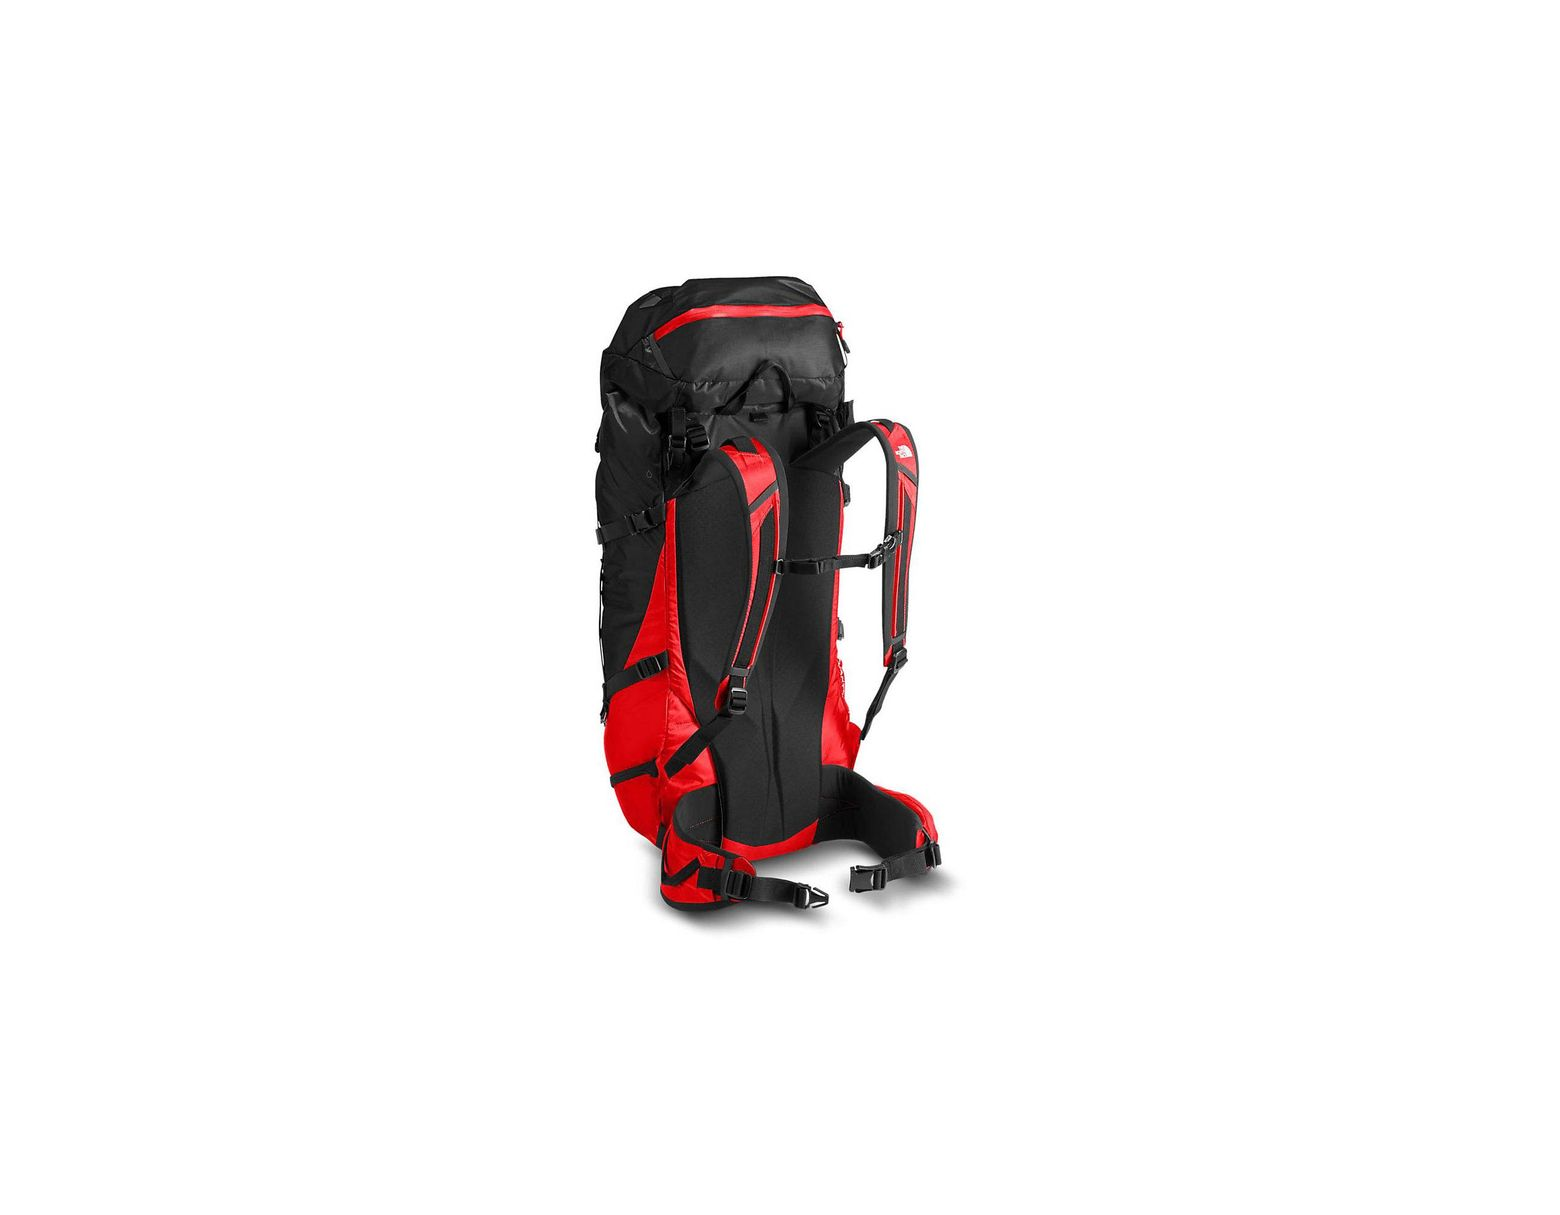 edfc8159a The North Face Phantom 50 Pack - Lyst